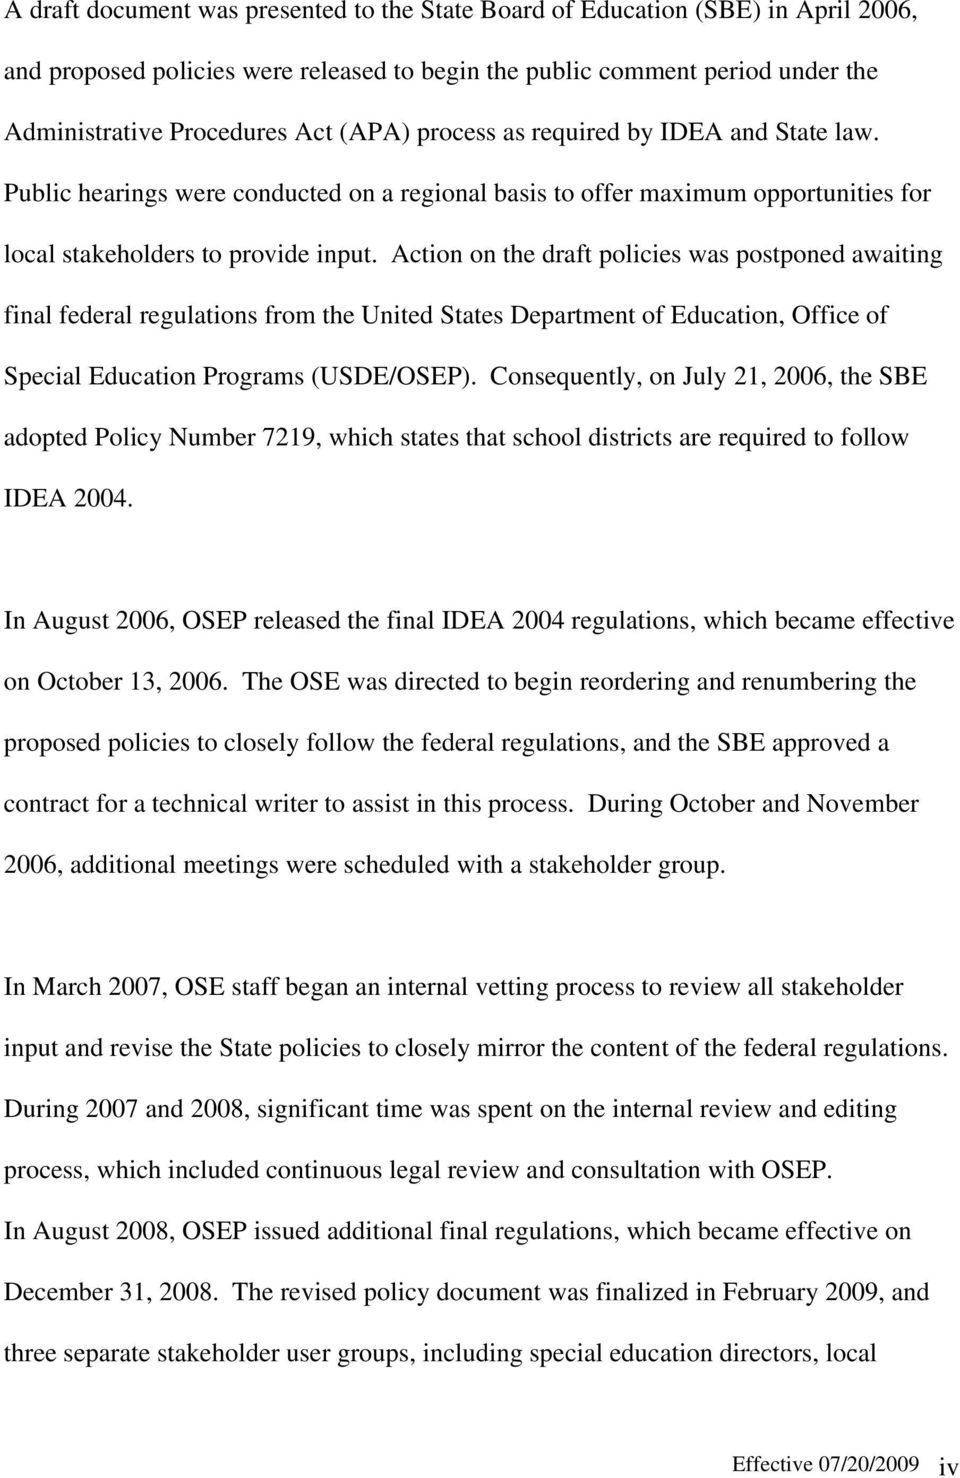 Action on the draft policies was postponed awaiting final federal regulations from the United States Department of Education, Office of Special Education Programs (USDE/OSEP).